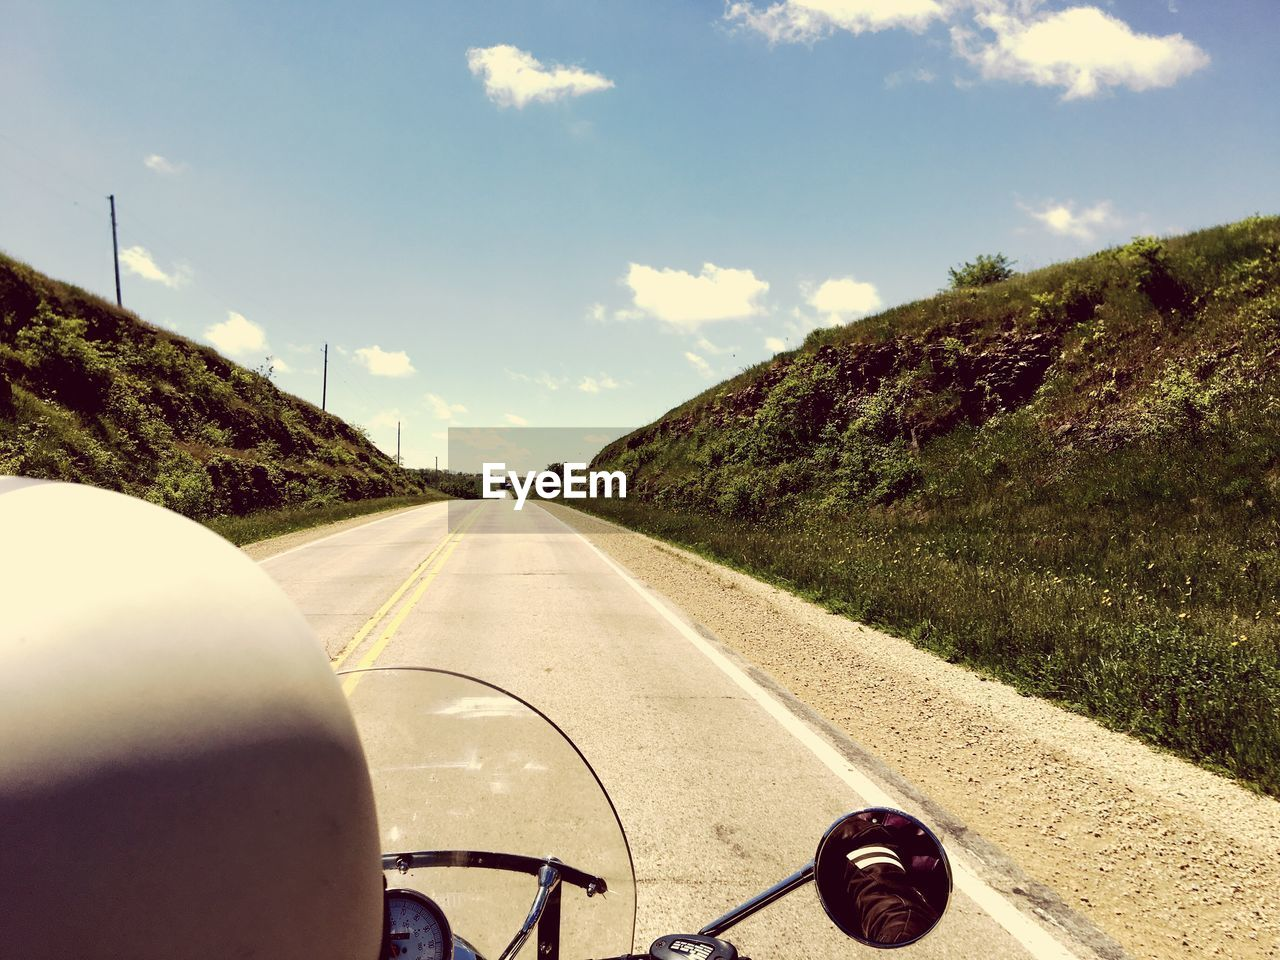 road, transportation, personal perspective, human body part, the way forward, sky, human hand, cloud - sky, car point of view, mode of transport, one person, windshield, landscape, day, land vehicle, car interior, real people, mountain, nature, scenics, outdoors, close-up, people